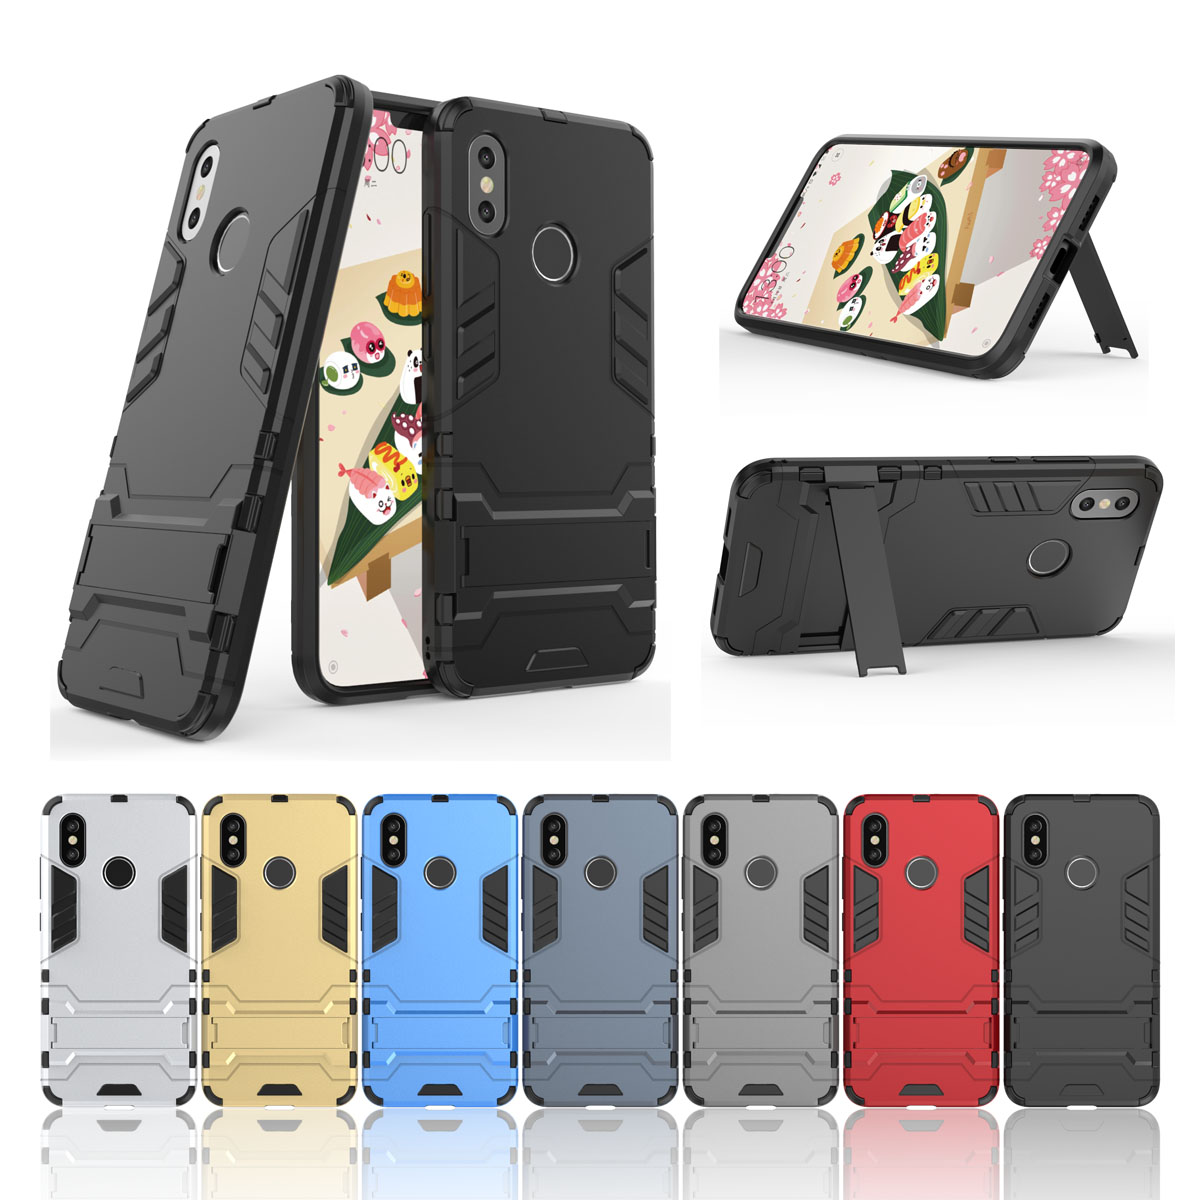 US $3 6 25% OFF|Shockproof Armor Hybrid Phone Case For Xiaomi Mi 8 SE 5 6  A1 A2 6X Mix 2s Max 2 For Redmi 5A S2 Plus Note 4 4X 5 5A Pro Cases-in